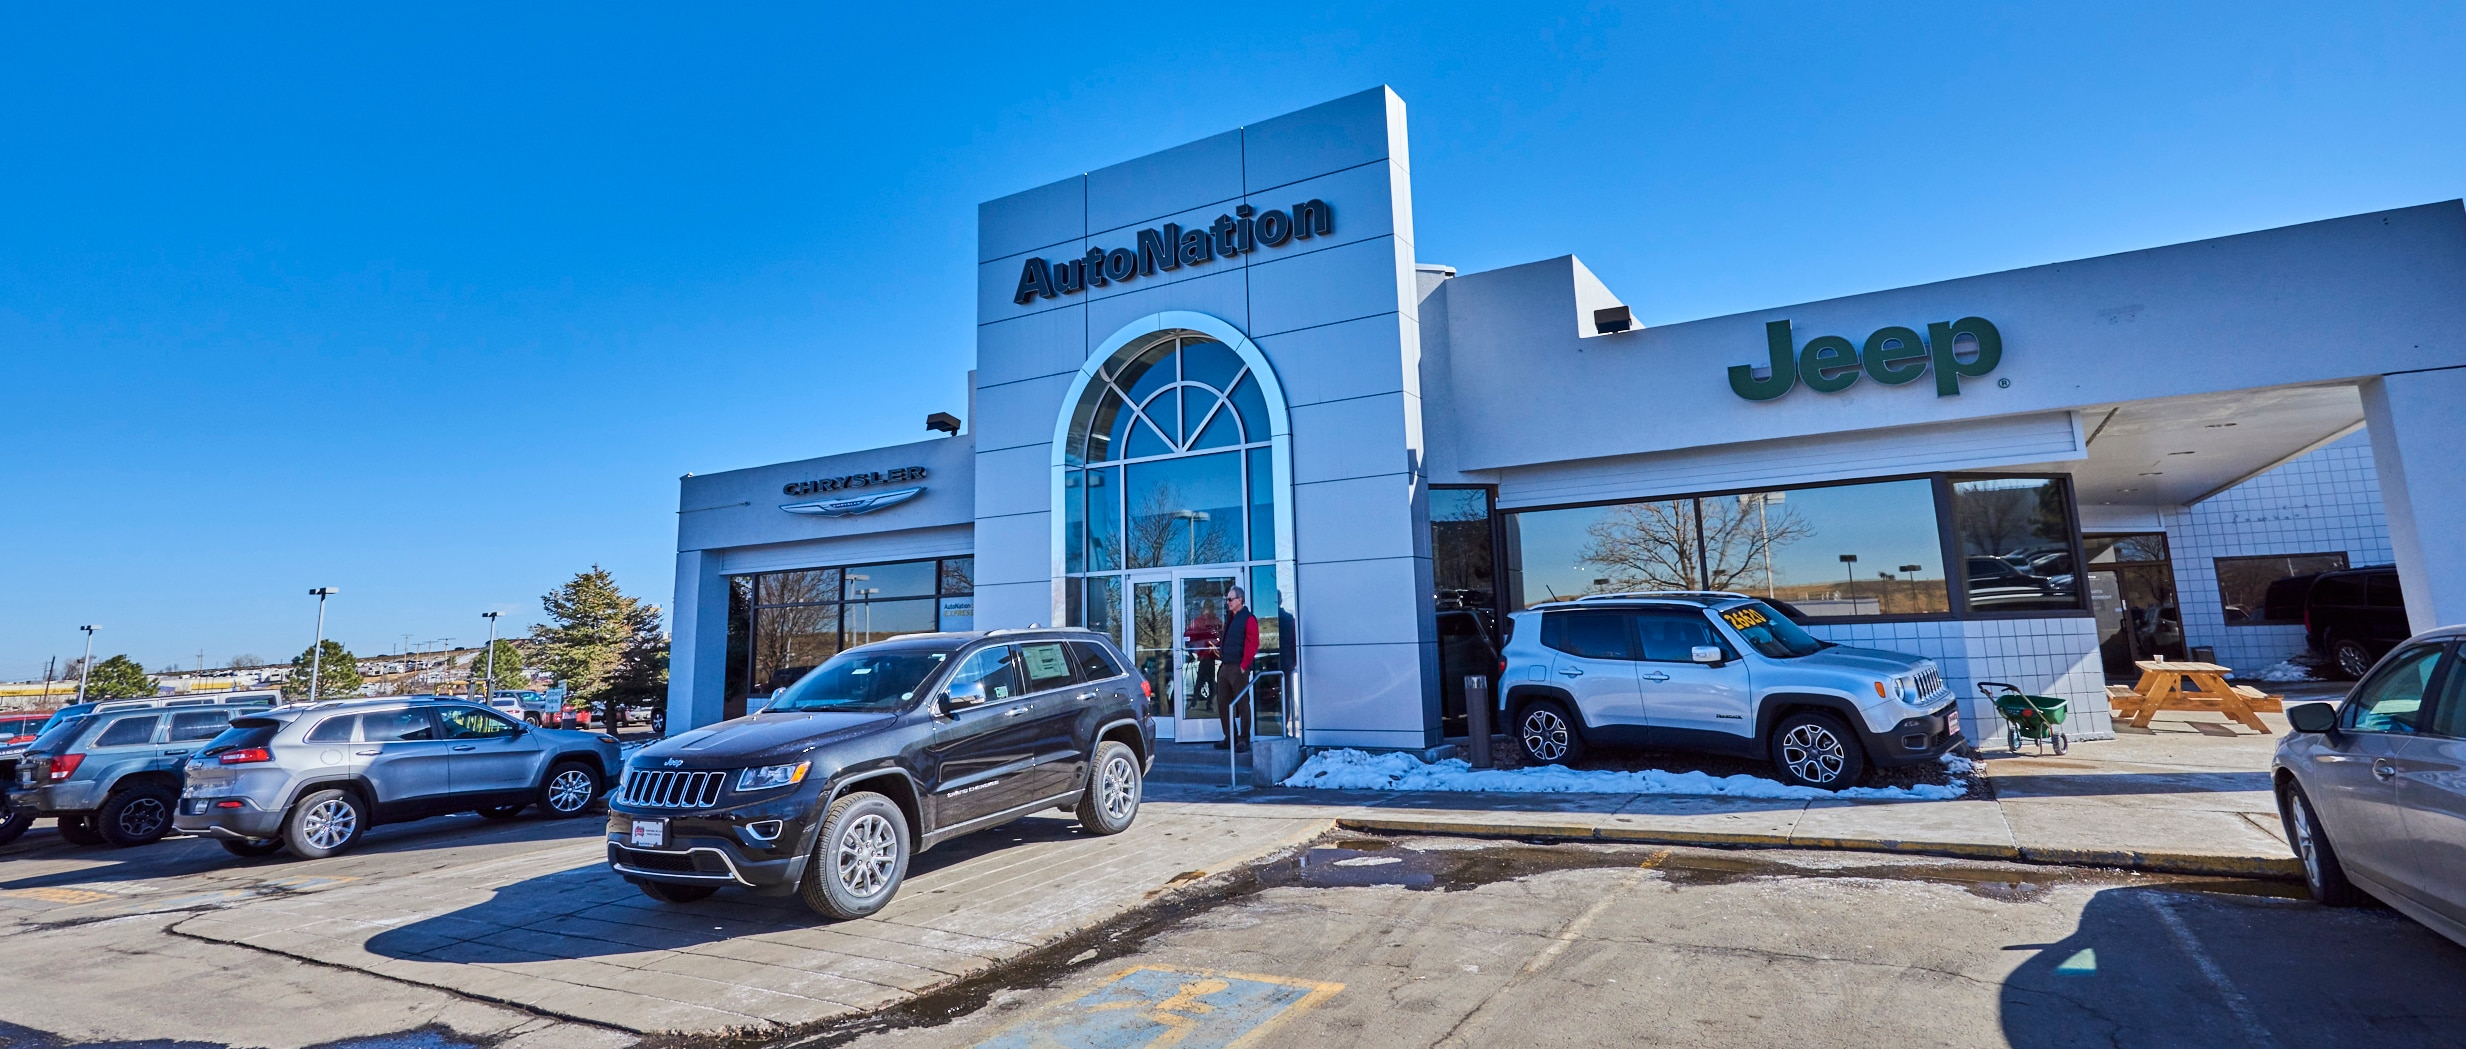 About Us | Autonation Chrysler Jeep West in Golden, CO